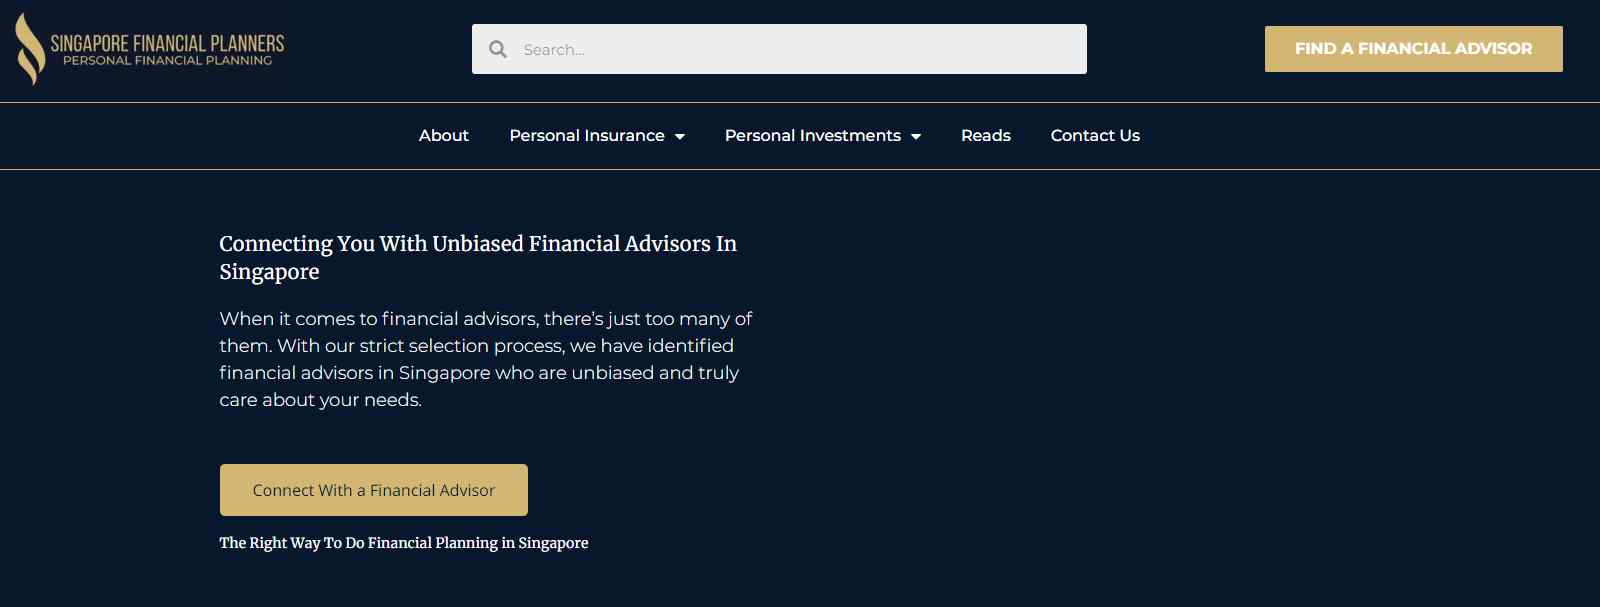 singapore financial planners Top Financial Advisors in Singapore